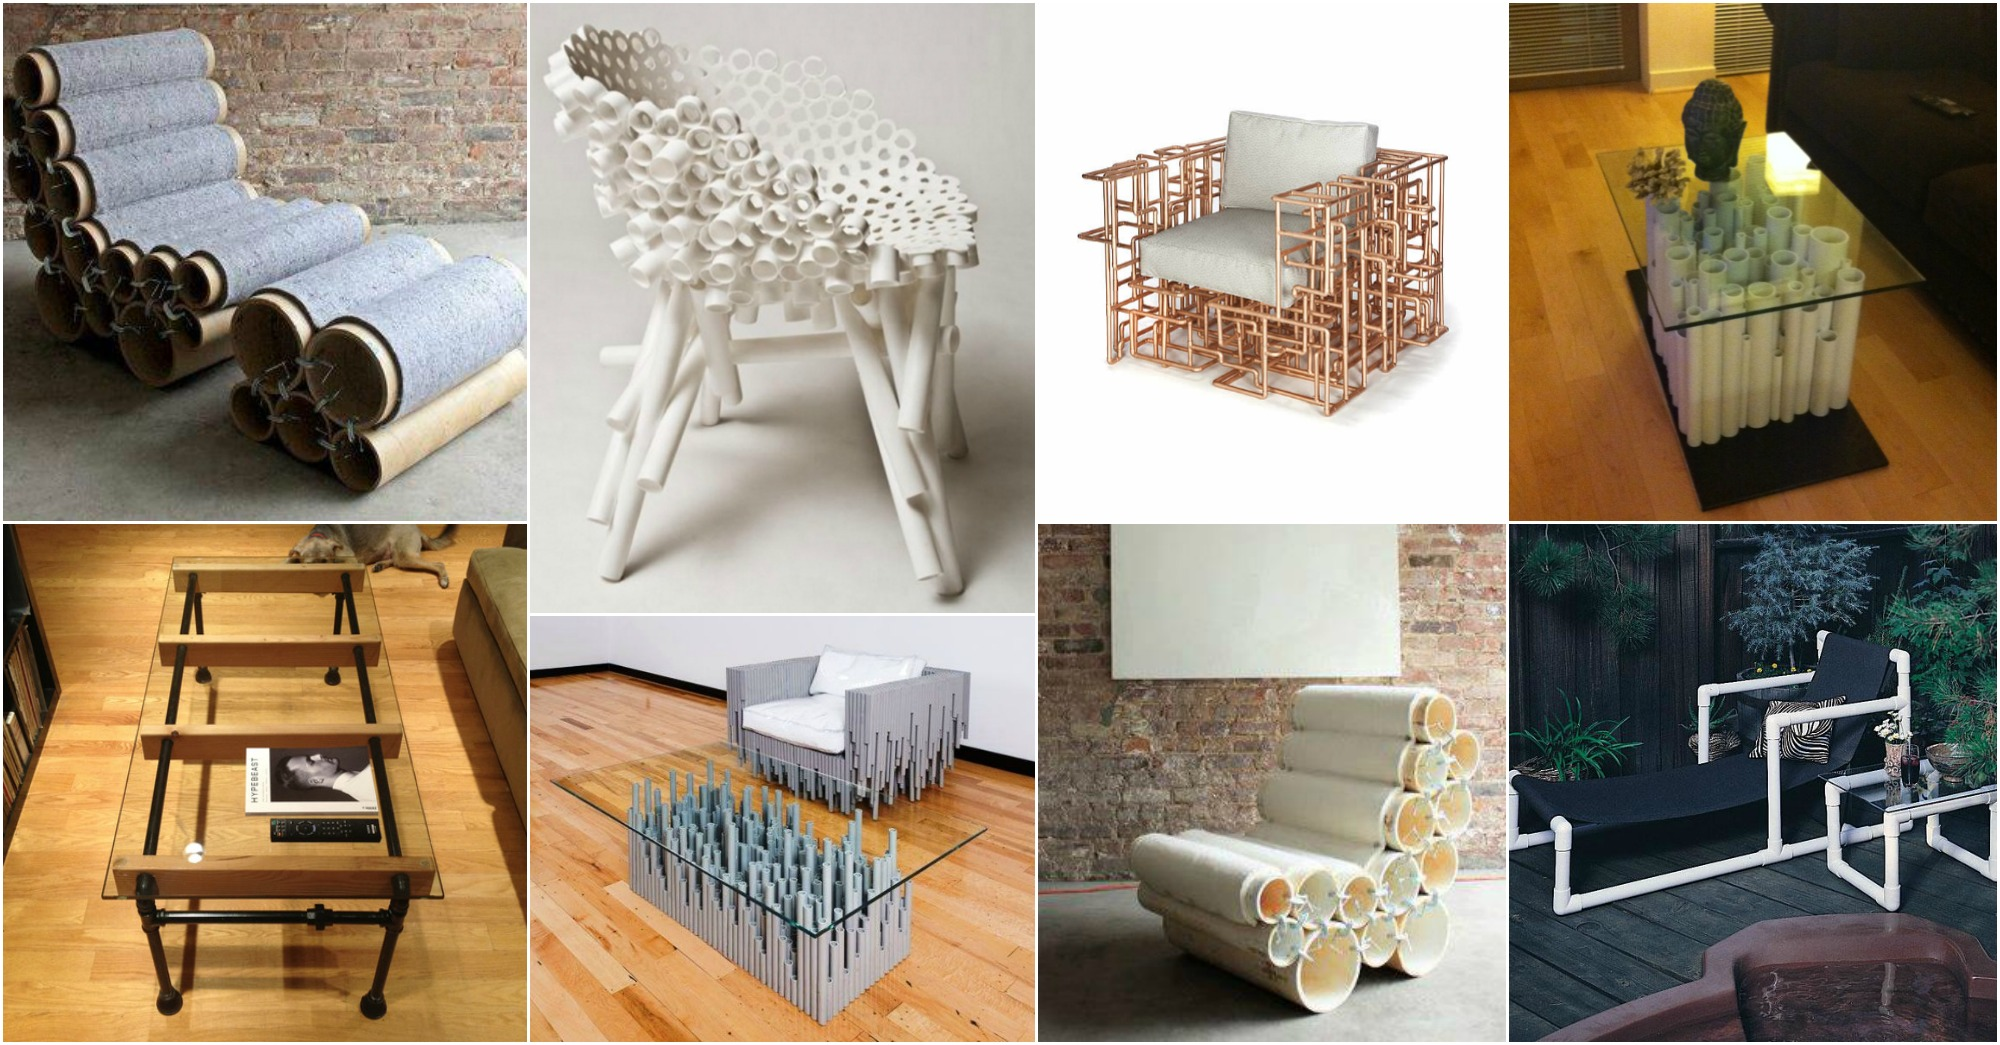 16 PVC Pipes Furniture Ideas That Will Fascinate You